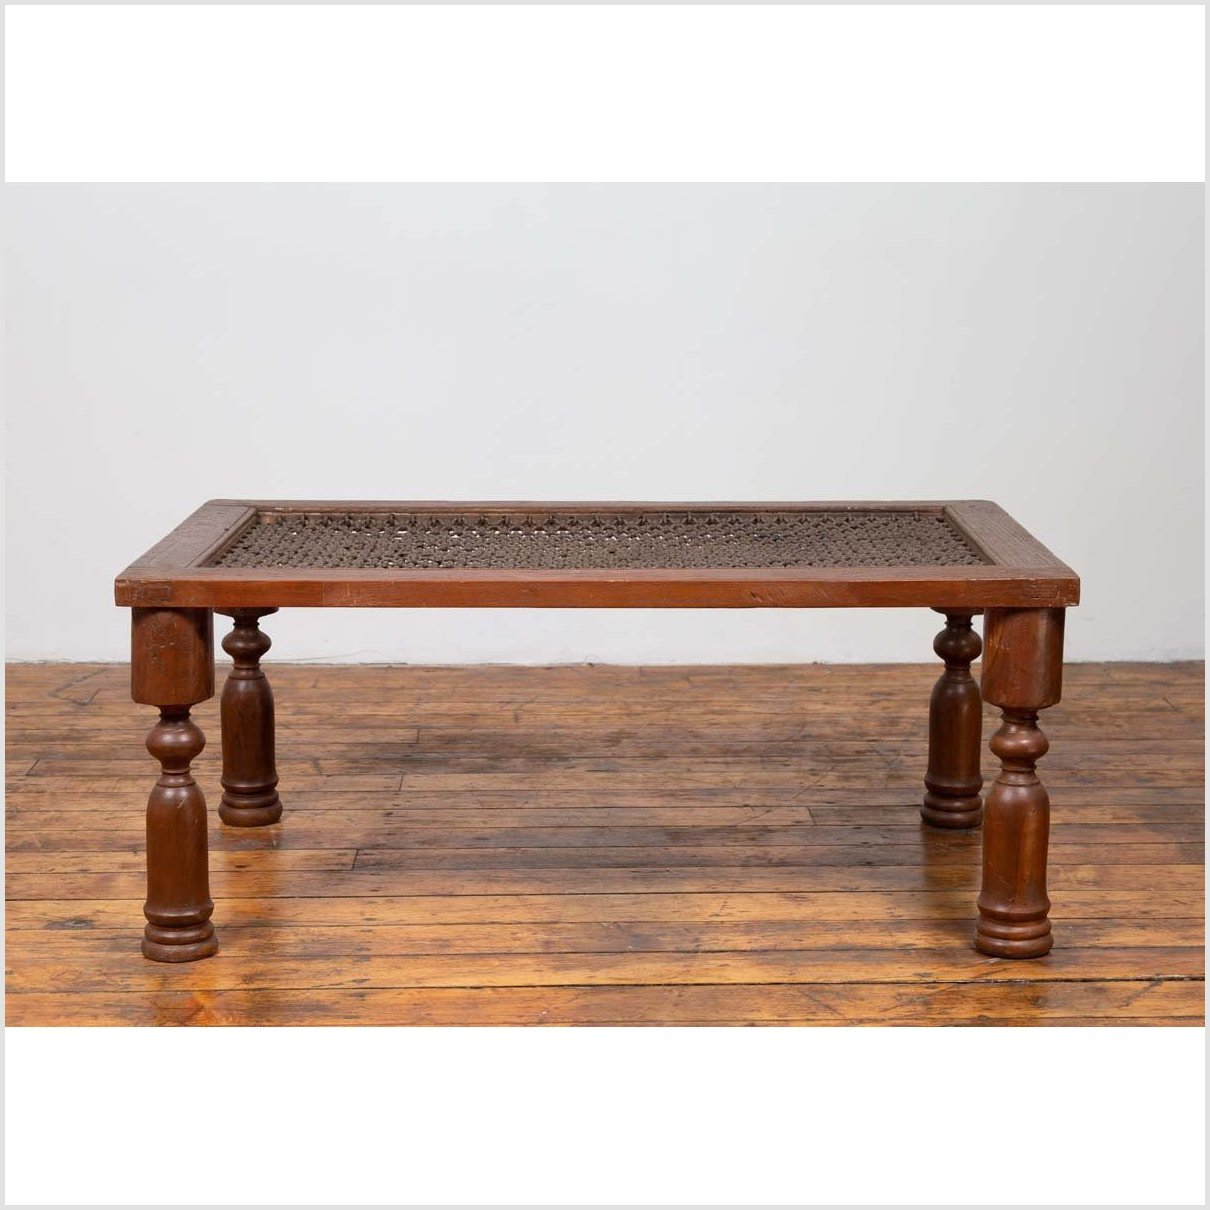 Antique Indian Wooden Coffee Table with Window Grate and Turned Baluster Legs